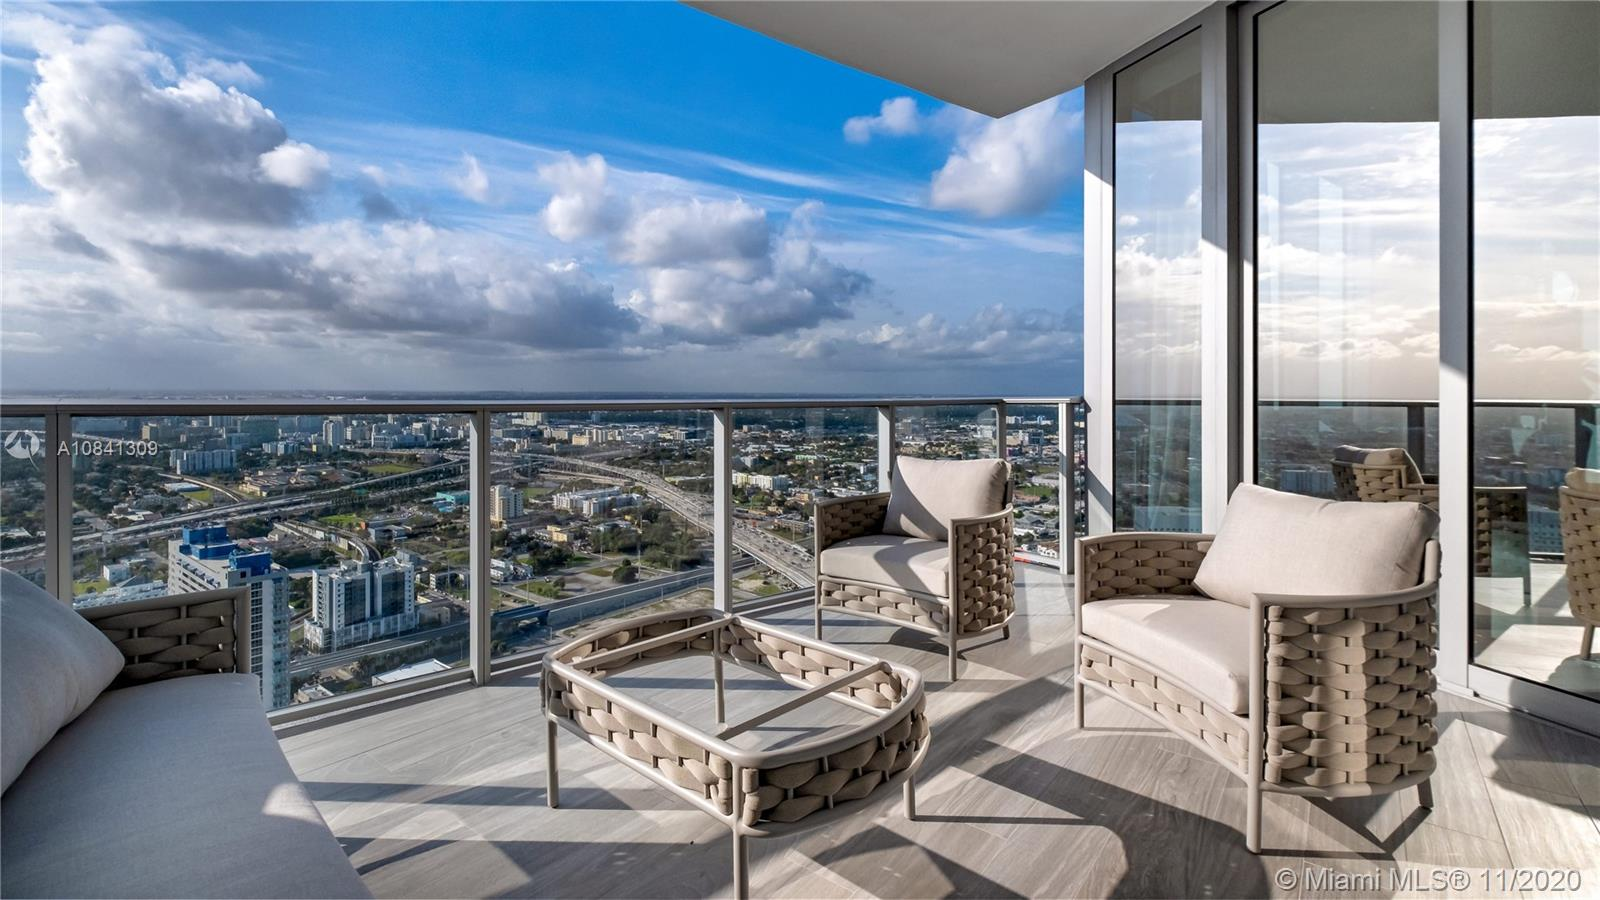 851 NE 1st Ave #4304 For Sale A10841309, FL